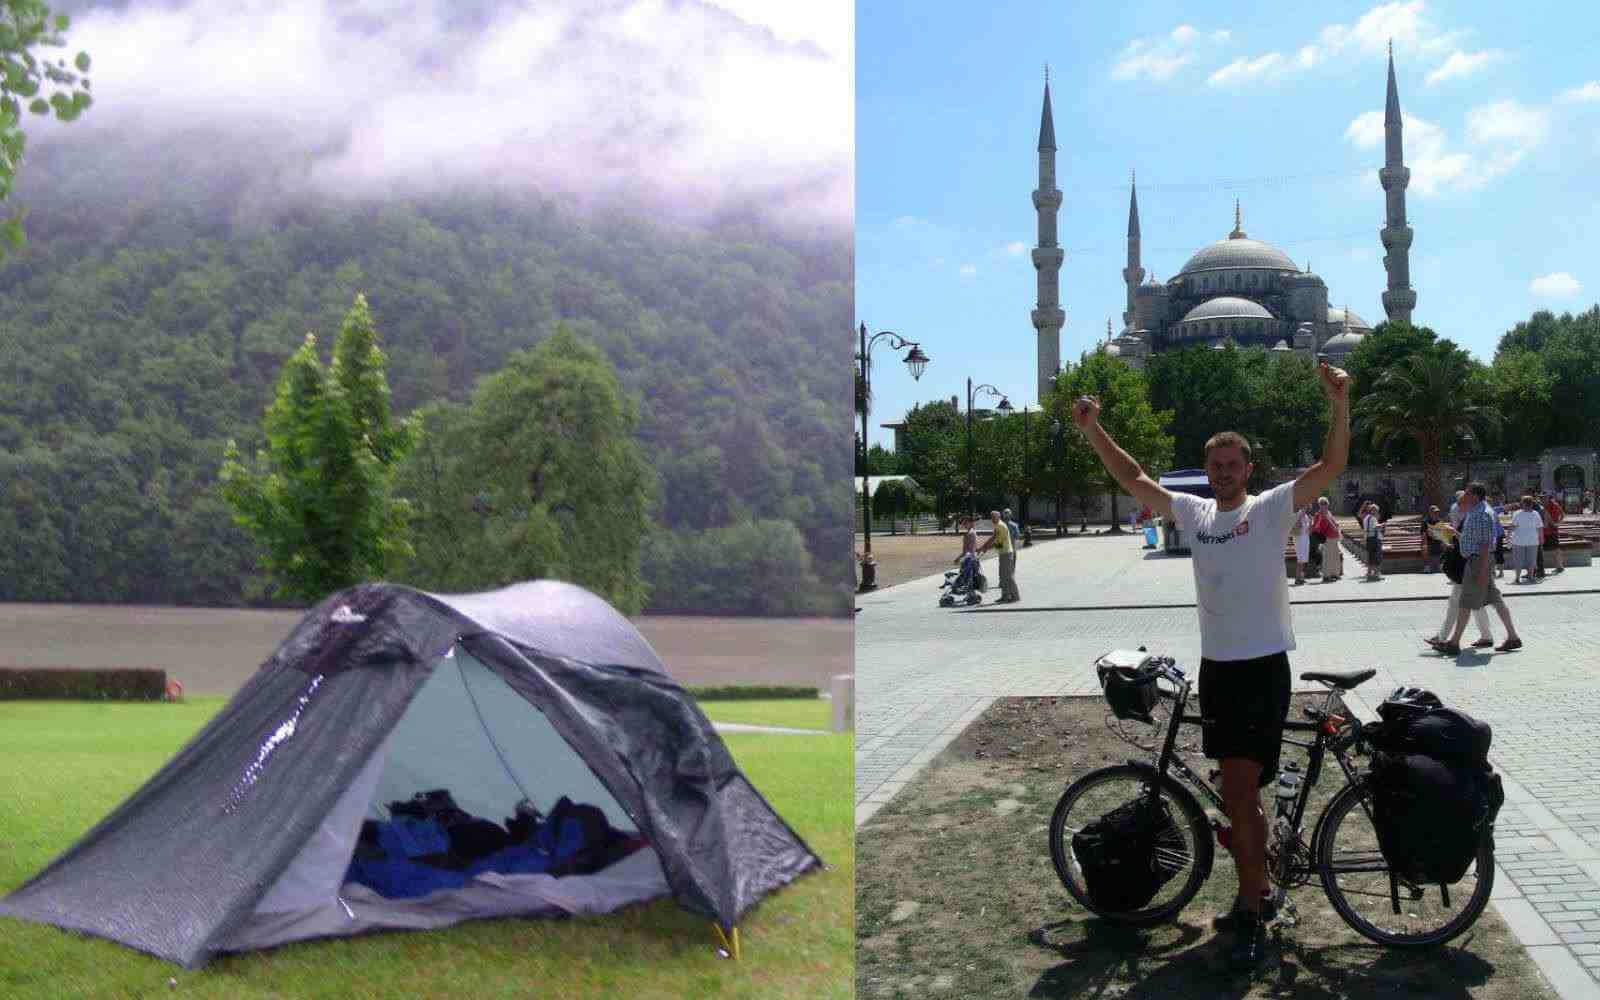 Simon bikepacking camping and reaching Istanbul